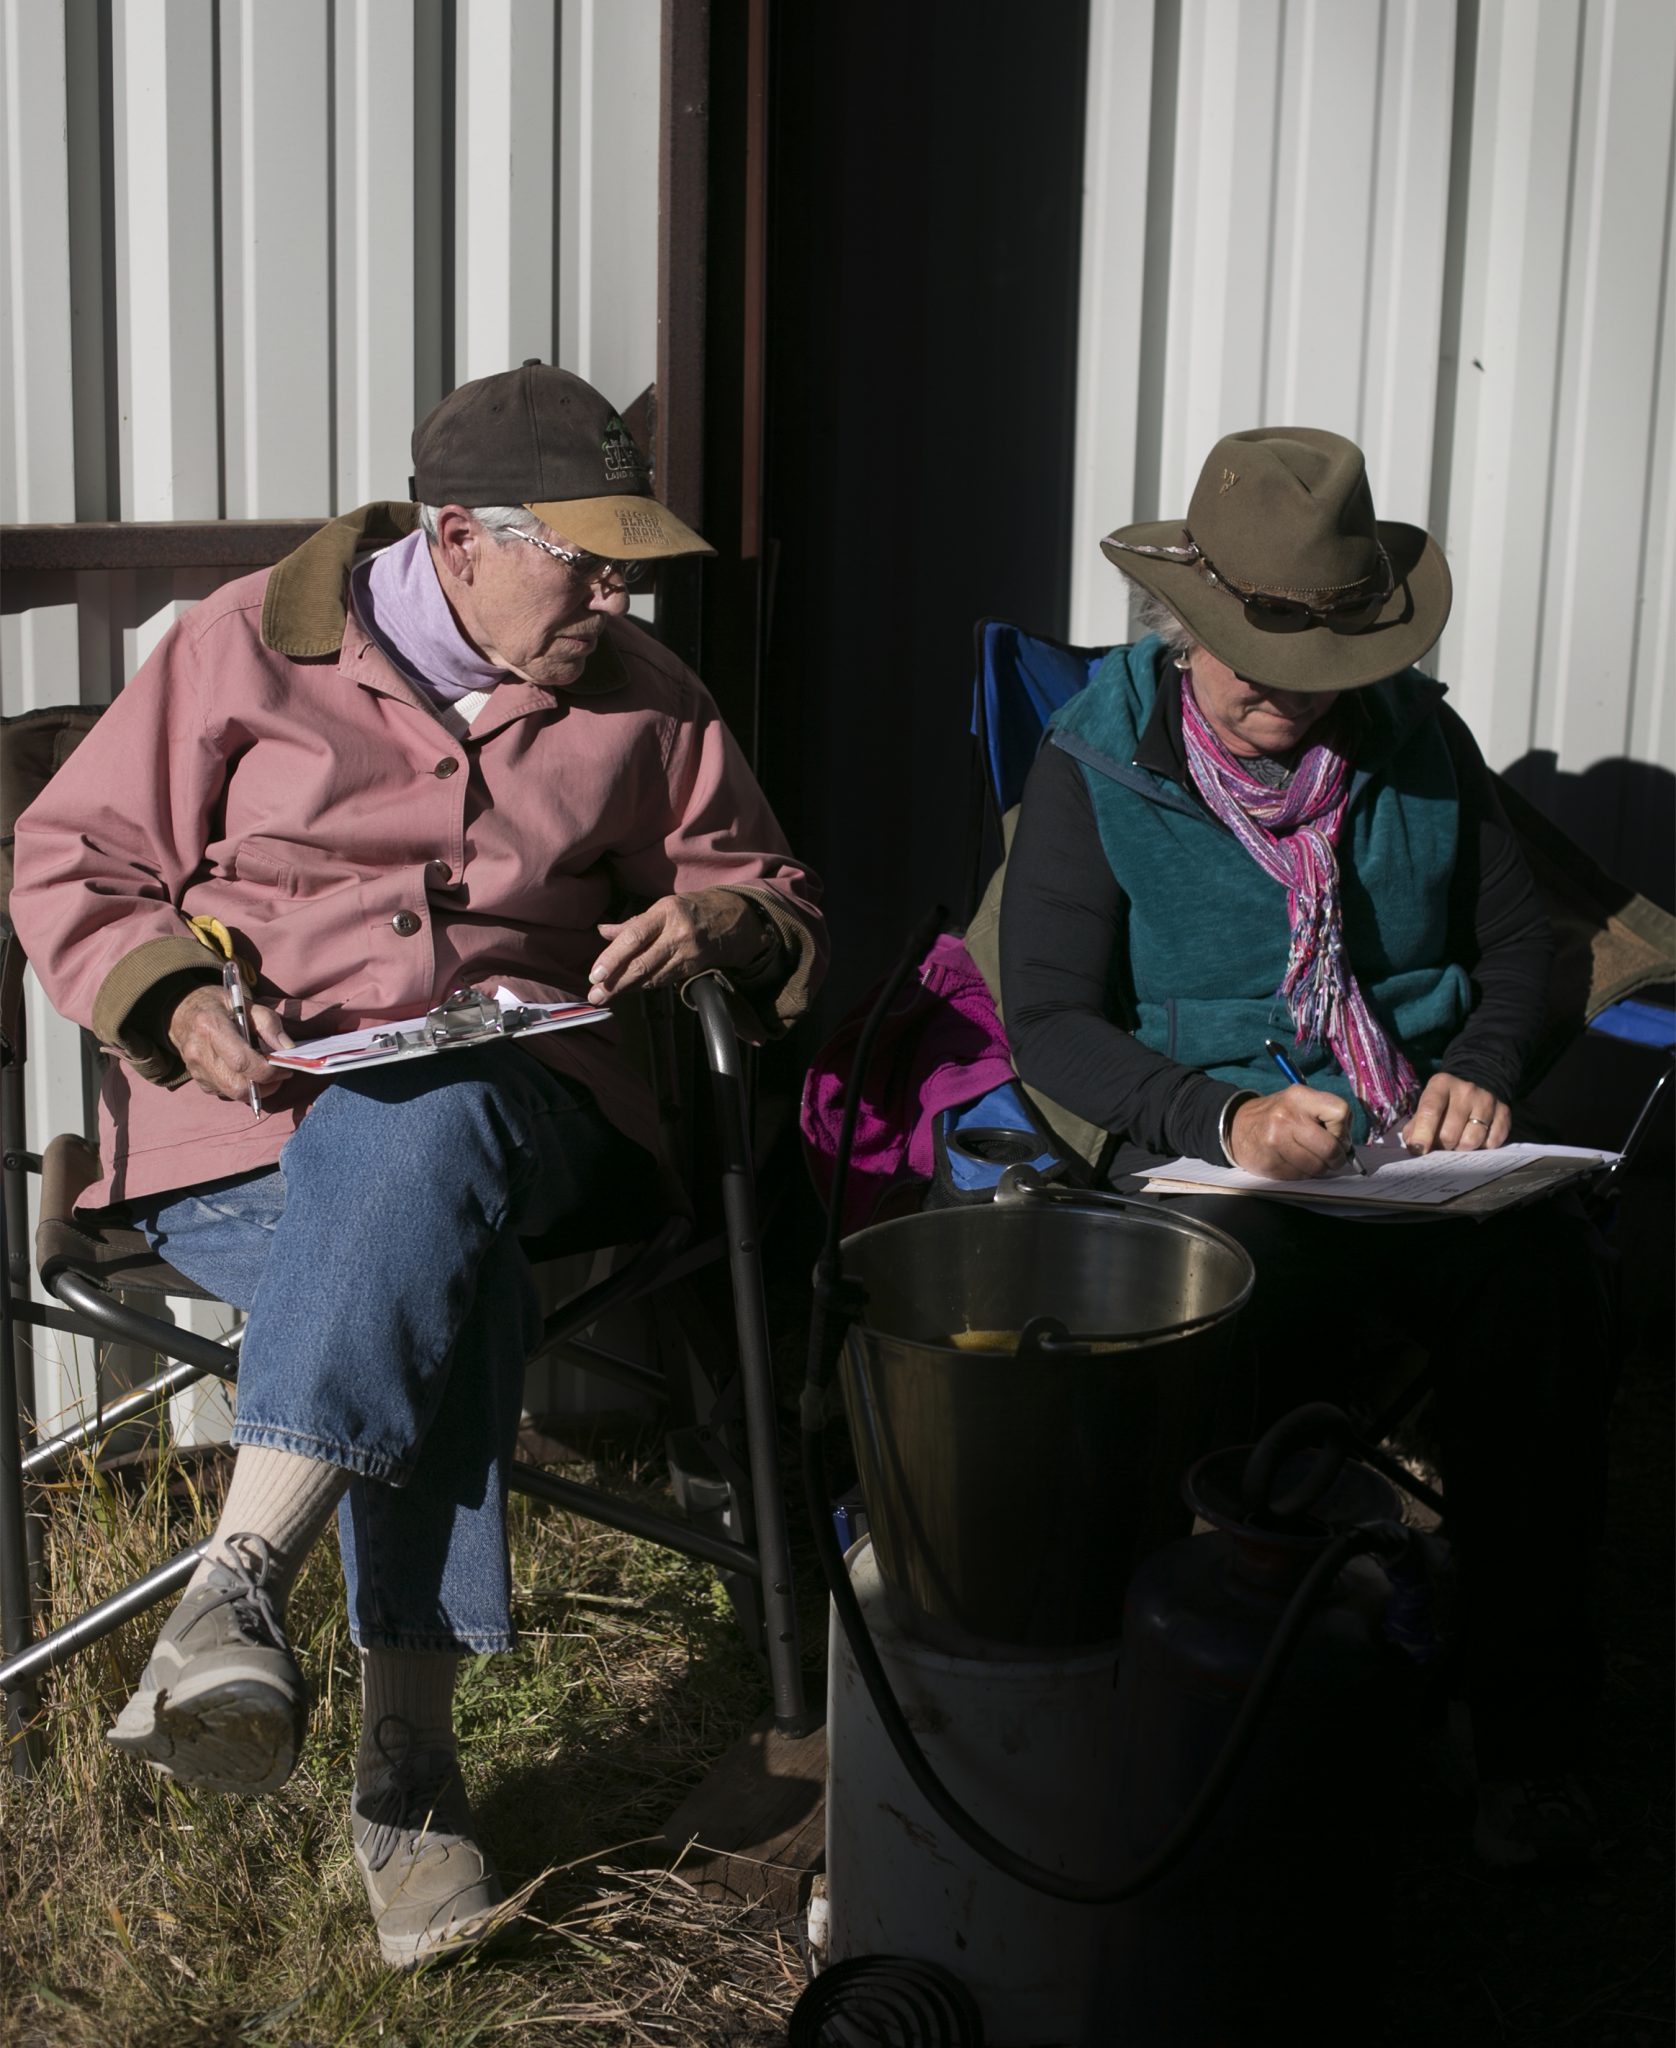 Thelma Starner and Vicki Ripp, ranchers, manage their family business